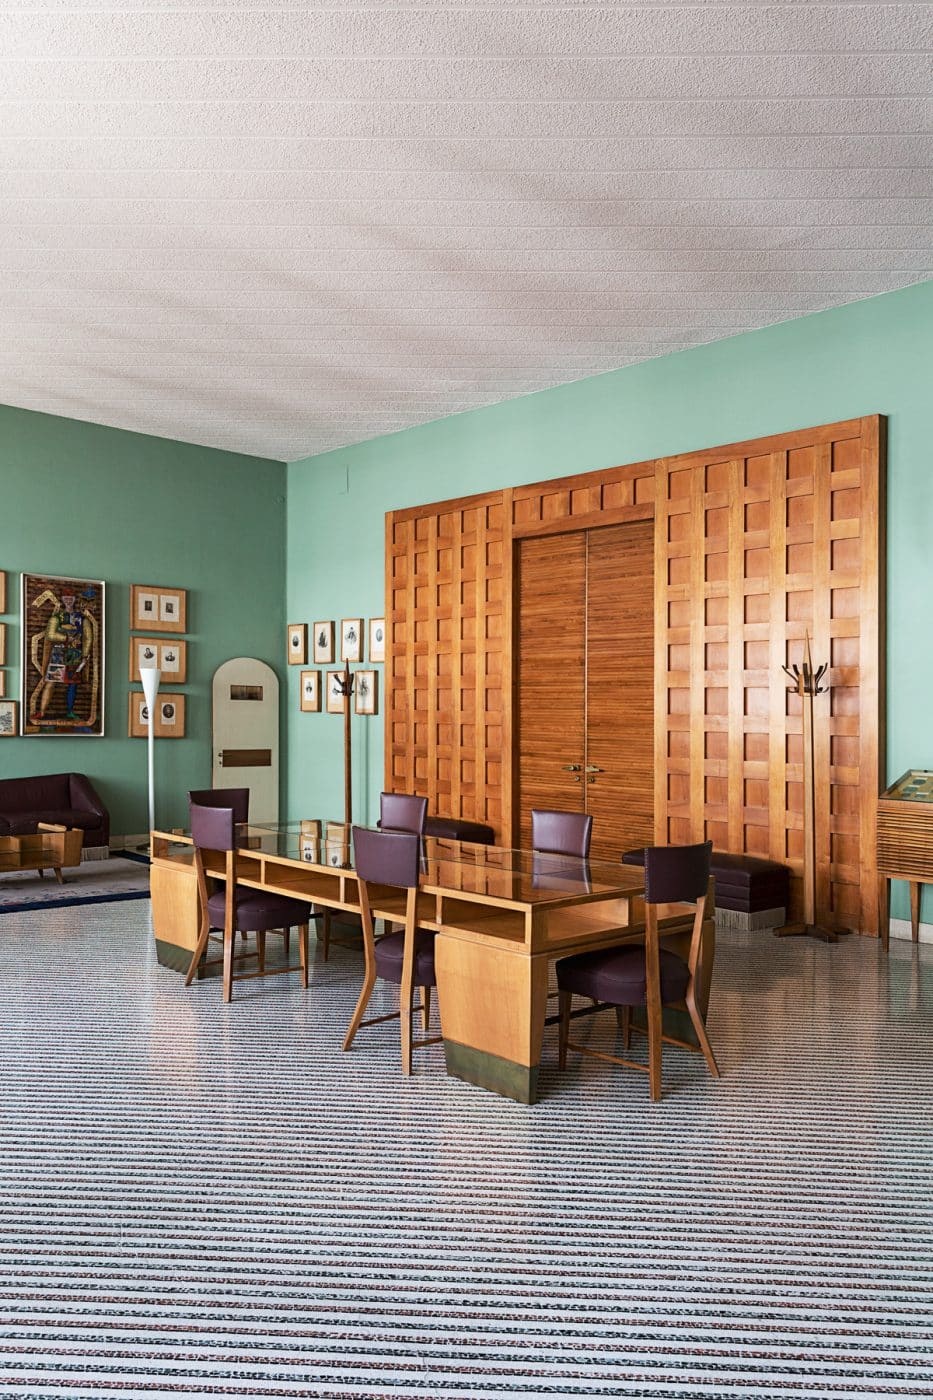 The rector's office at the Palazzo del Bo, as seen in the book Gio Ponti, offered by Taschen